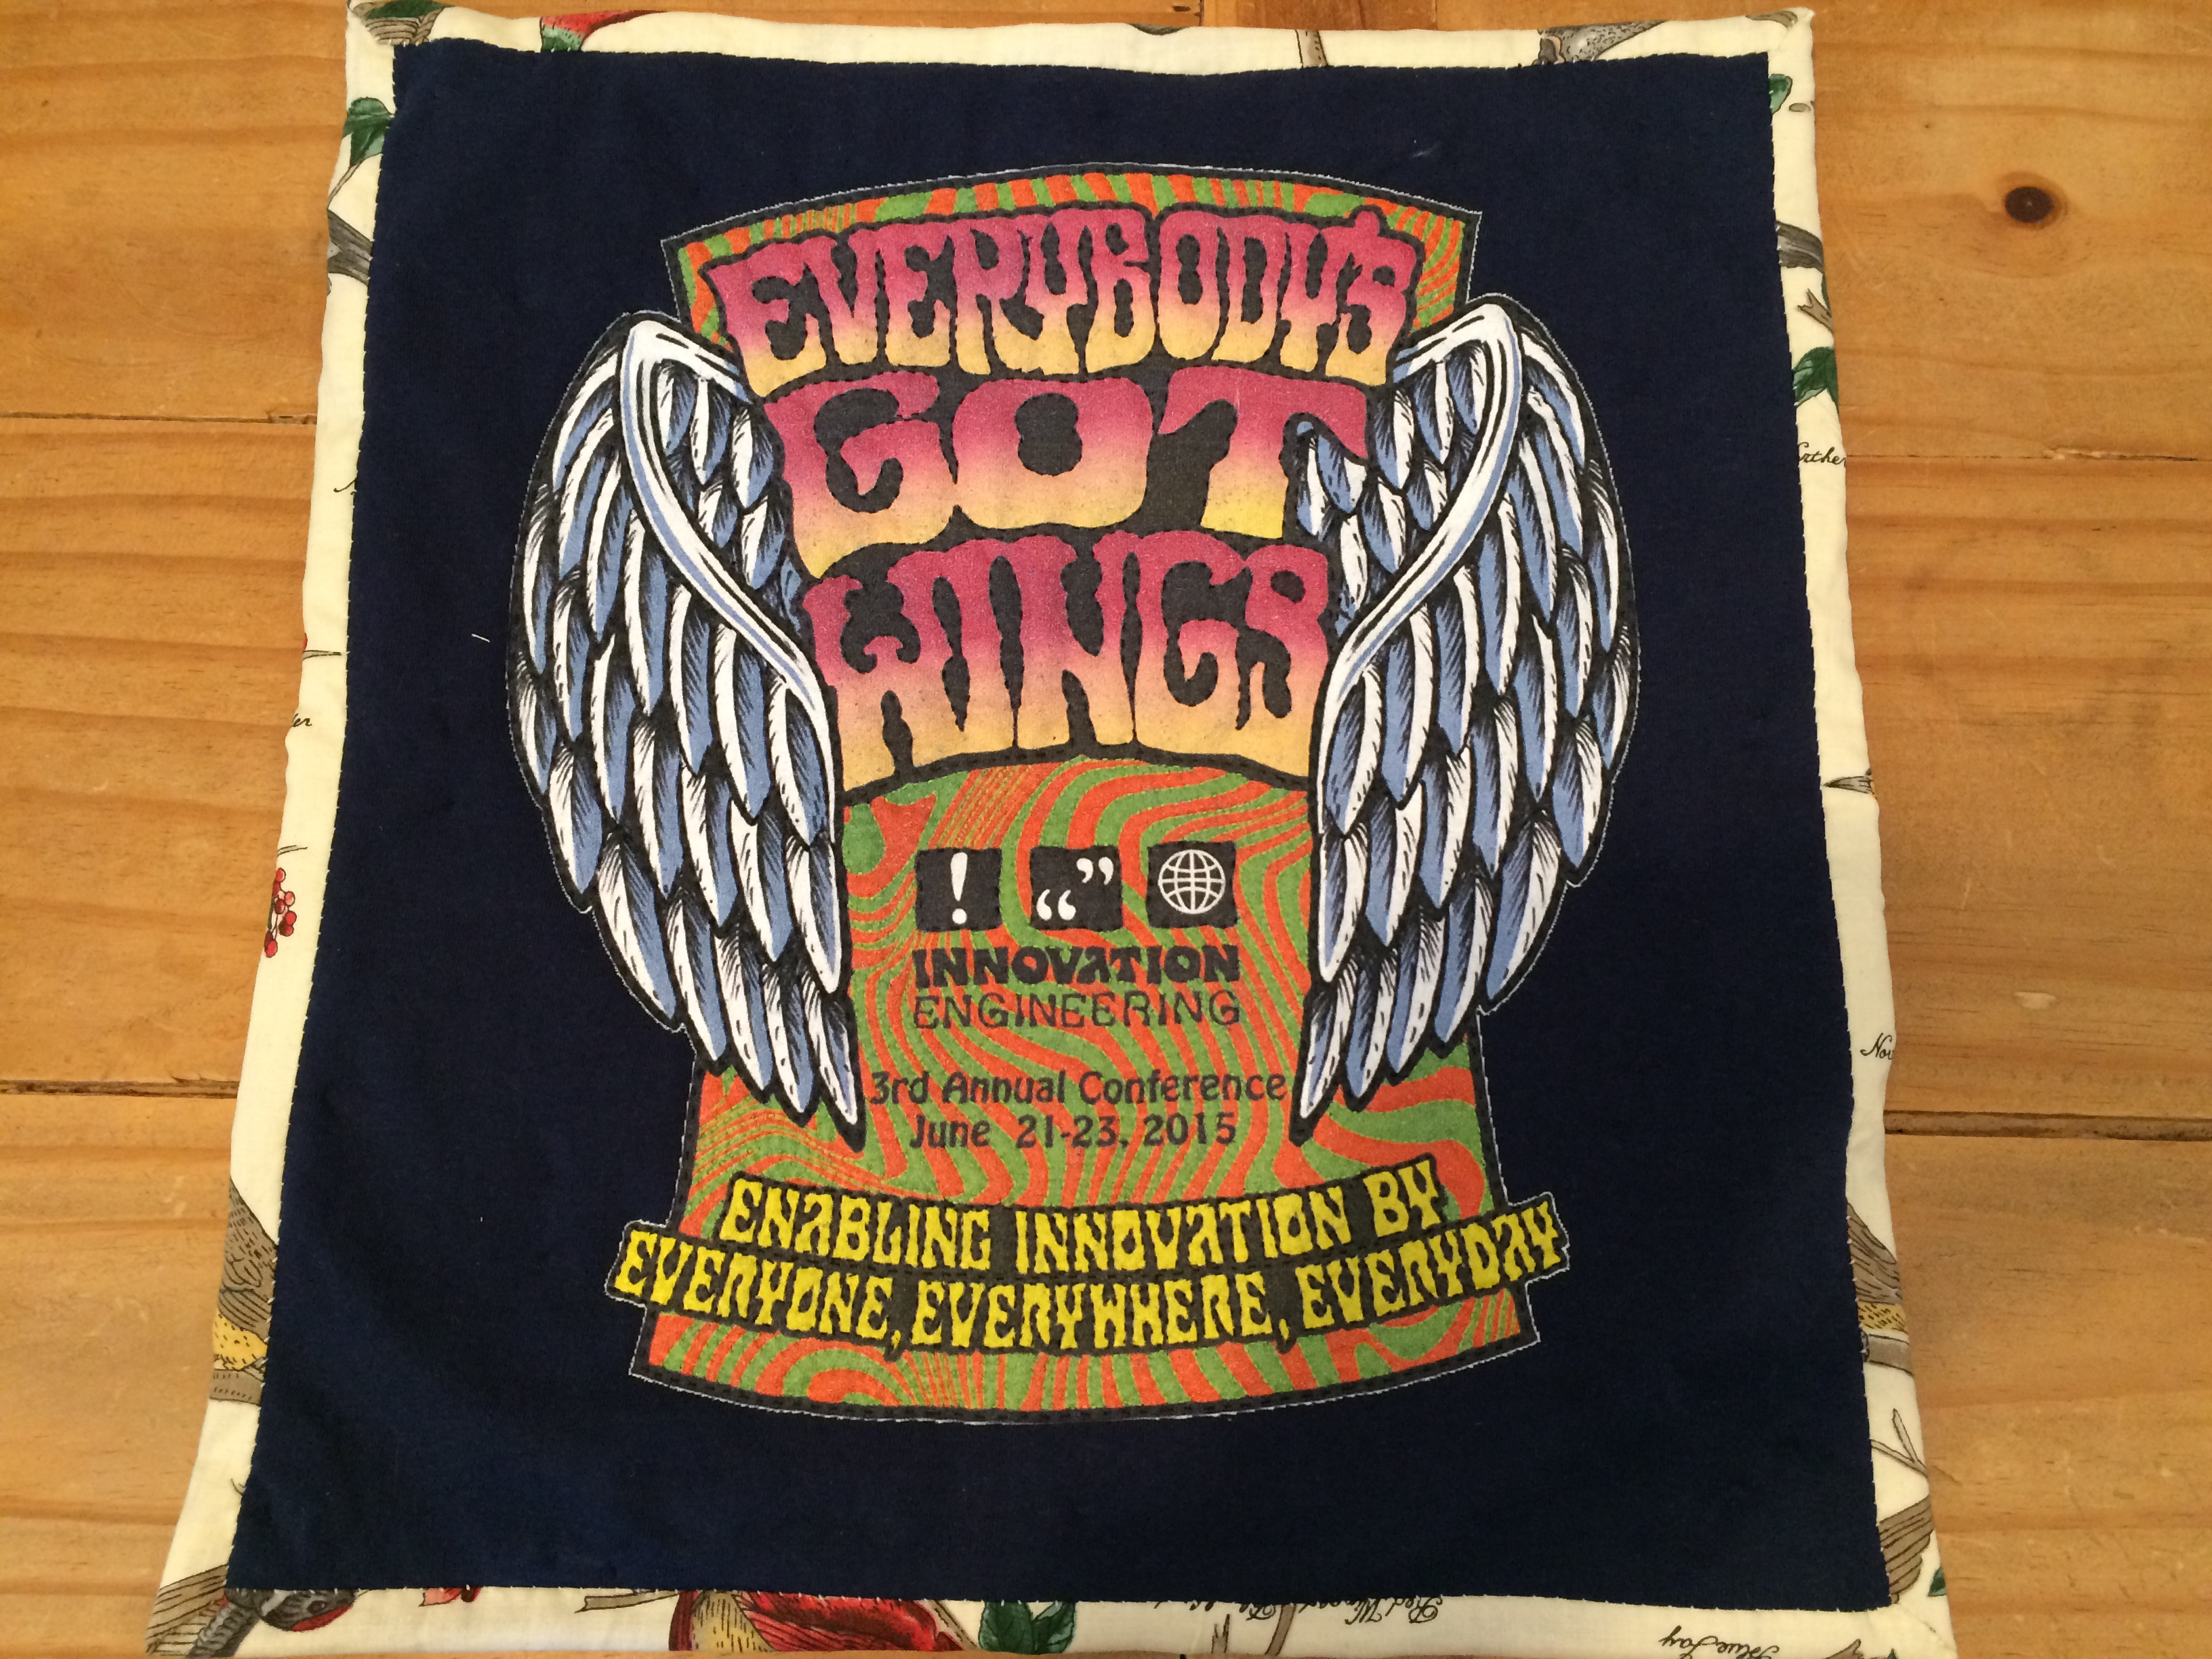 Hand-quilted Innovation Engineering Conference t-shirt